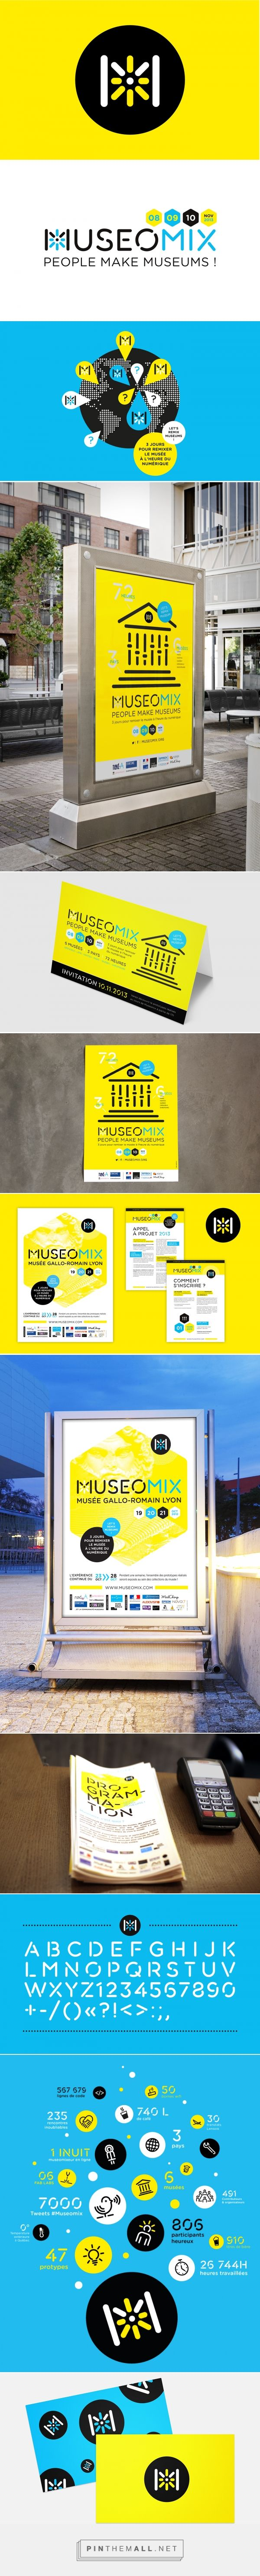 Museomix - Brand identity on Behance | Fivestar Branding – Design and Branding Agency & Inspiration Gallery